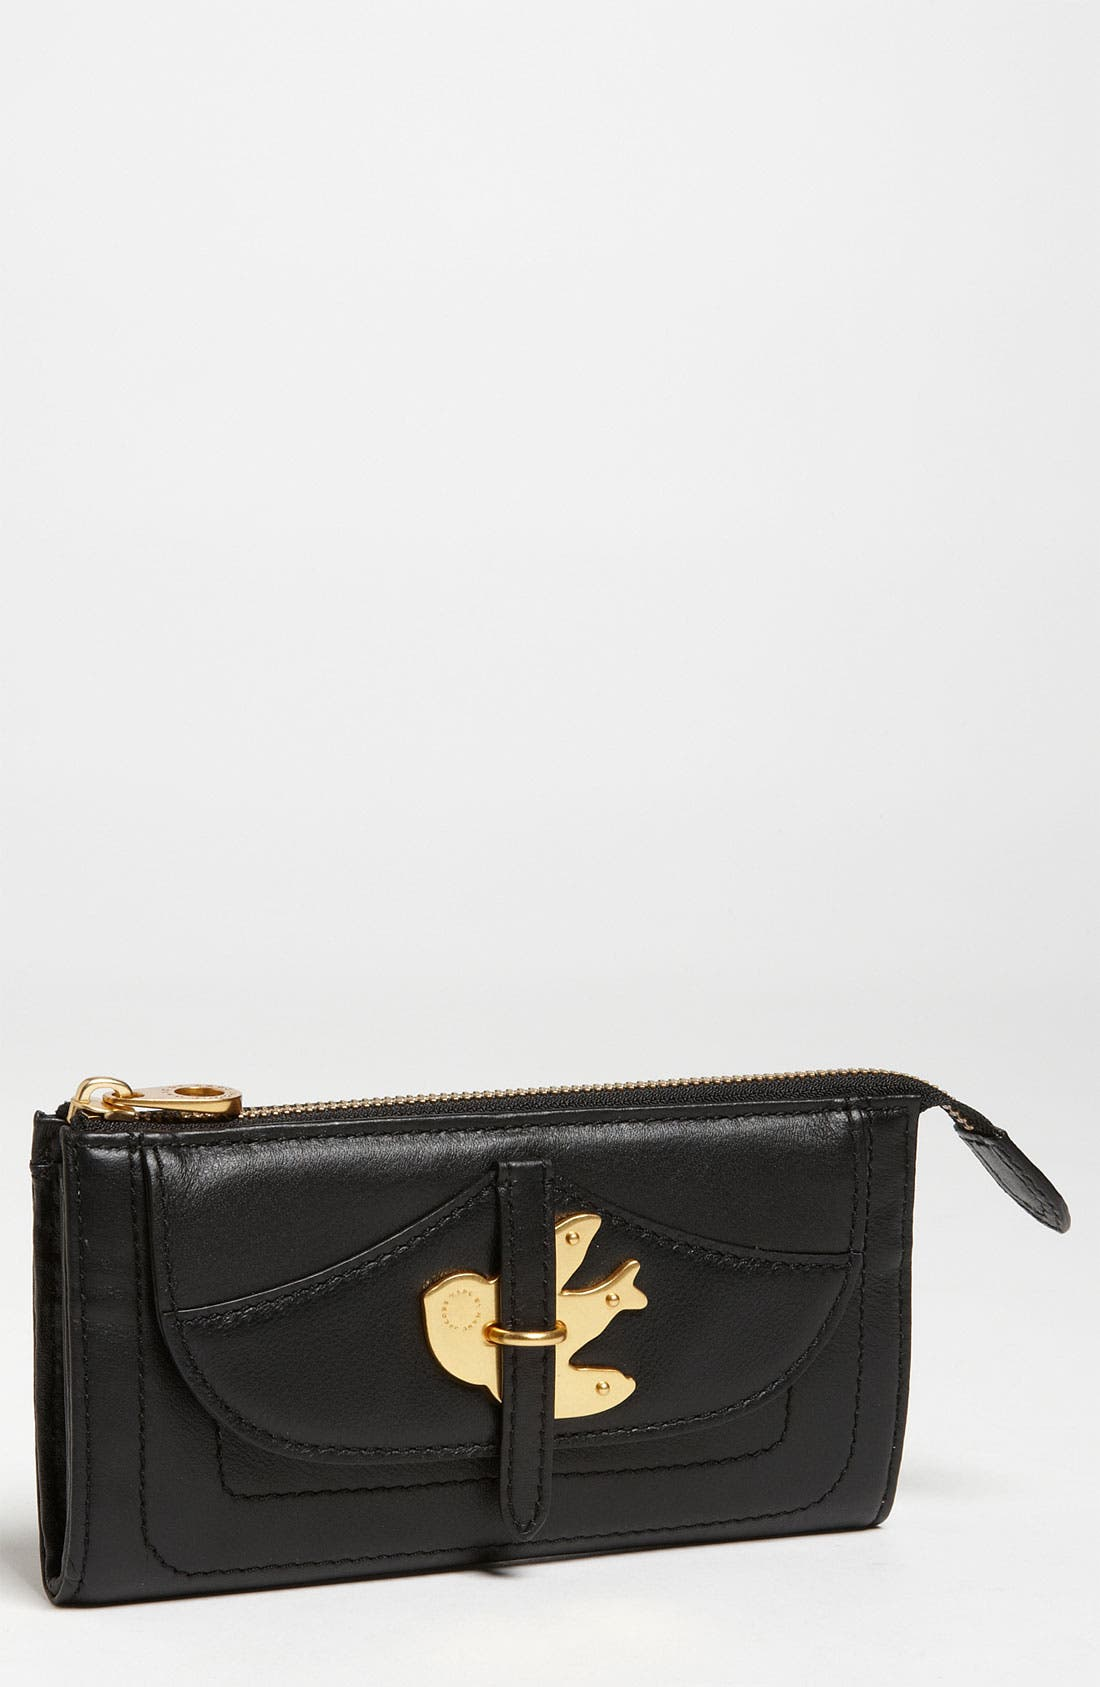 Main Image - MARC BY MARC JACOBS 'Petal to the Metal' Clutch Wallet